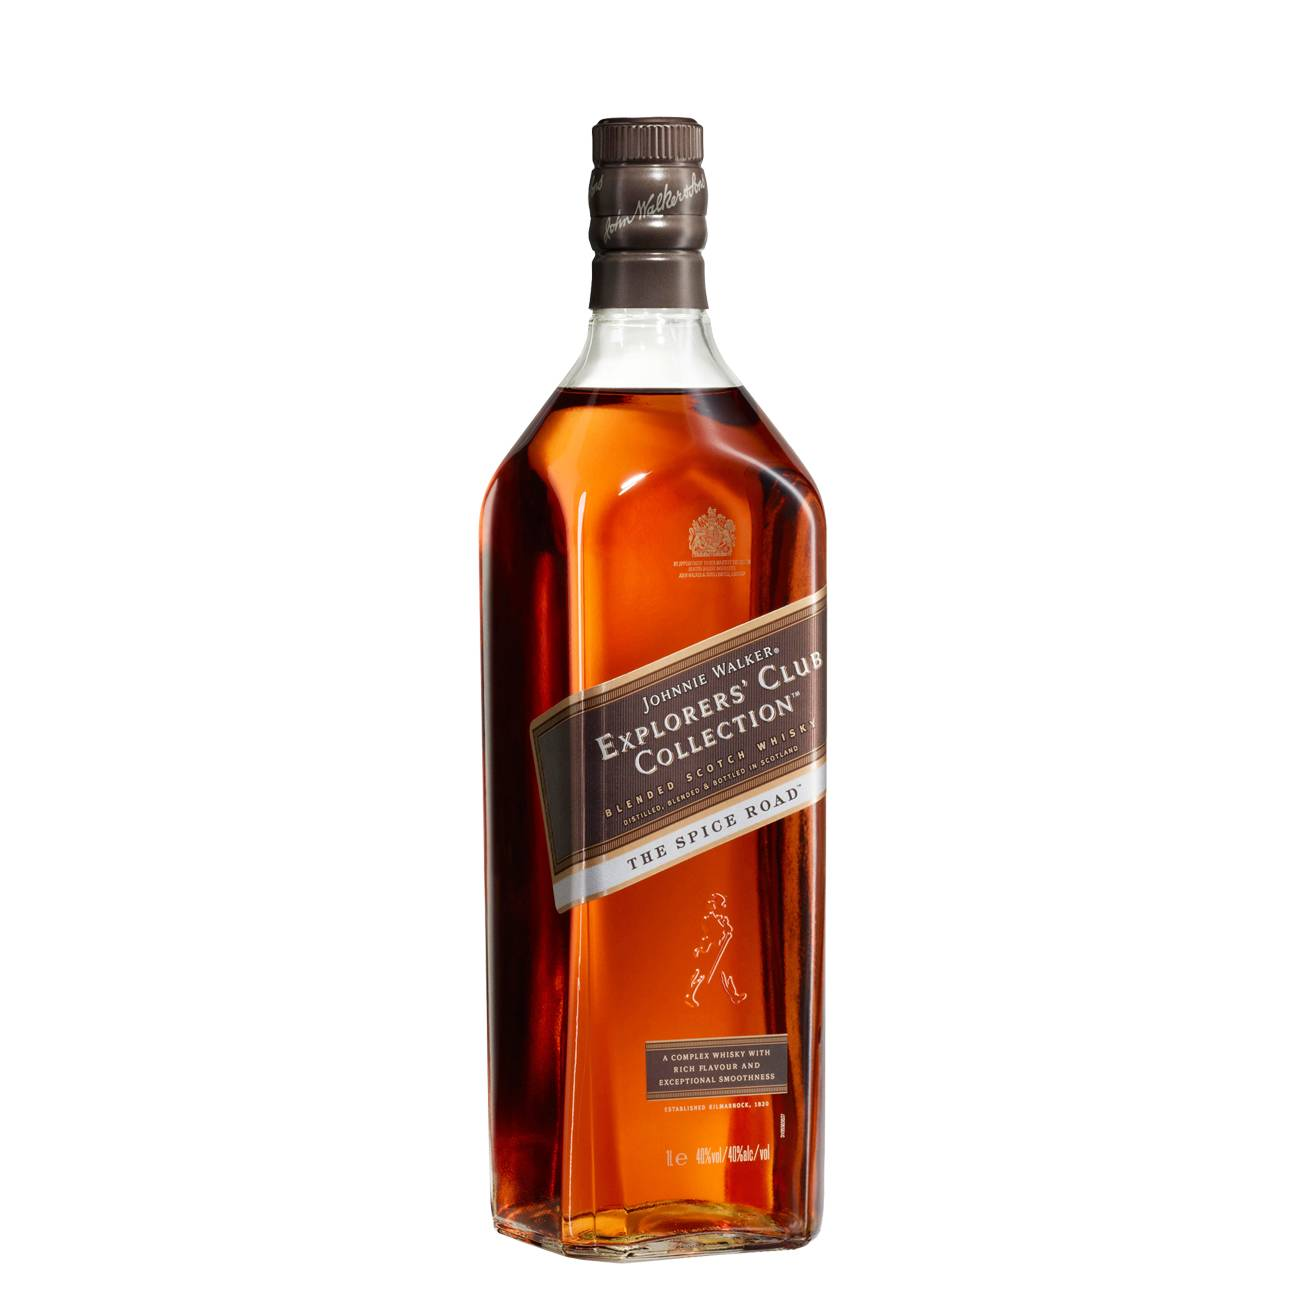 Whisky scotian, EXPLORERS CLUB COLLECTION THE GOLD ROUTE 1000ml, Johnnie Walker